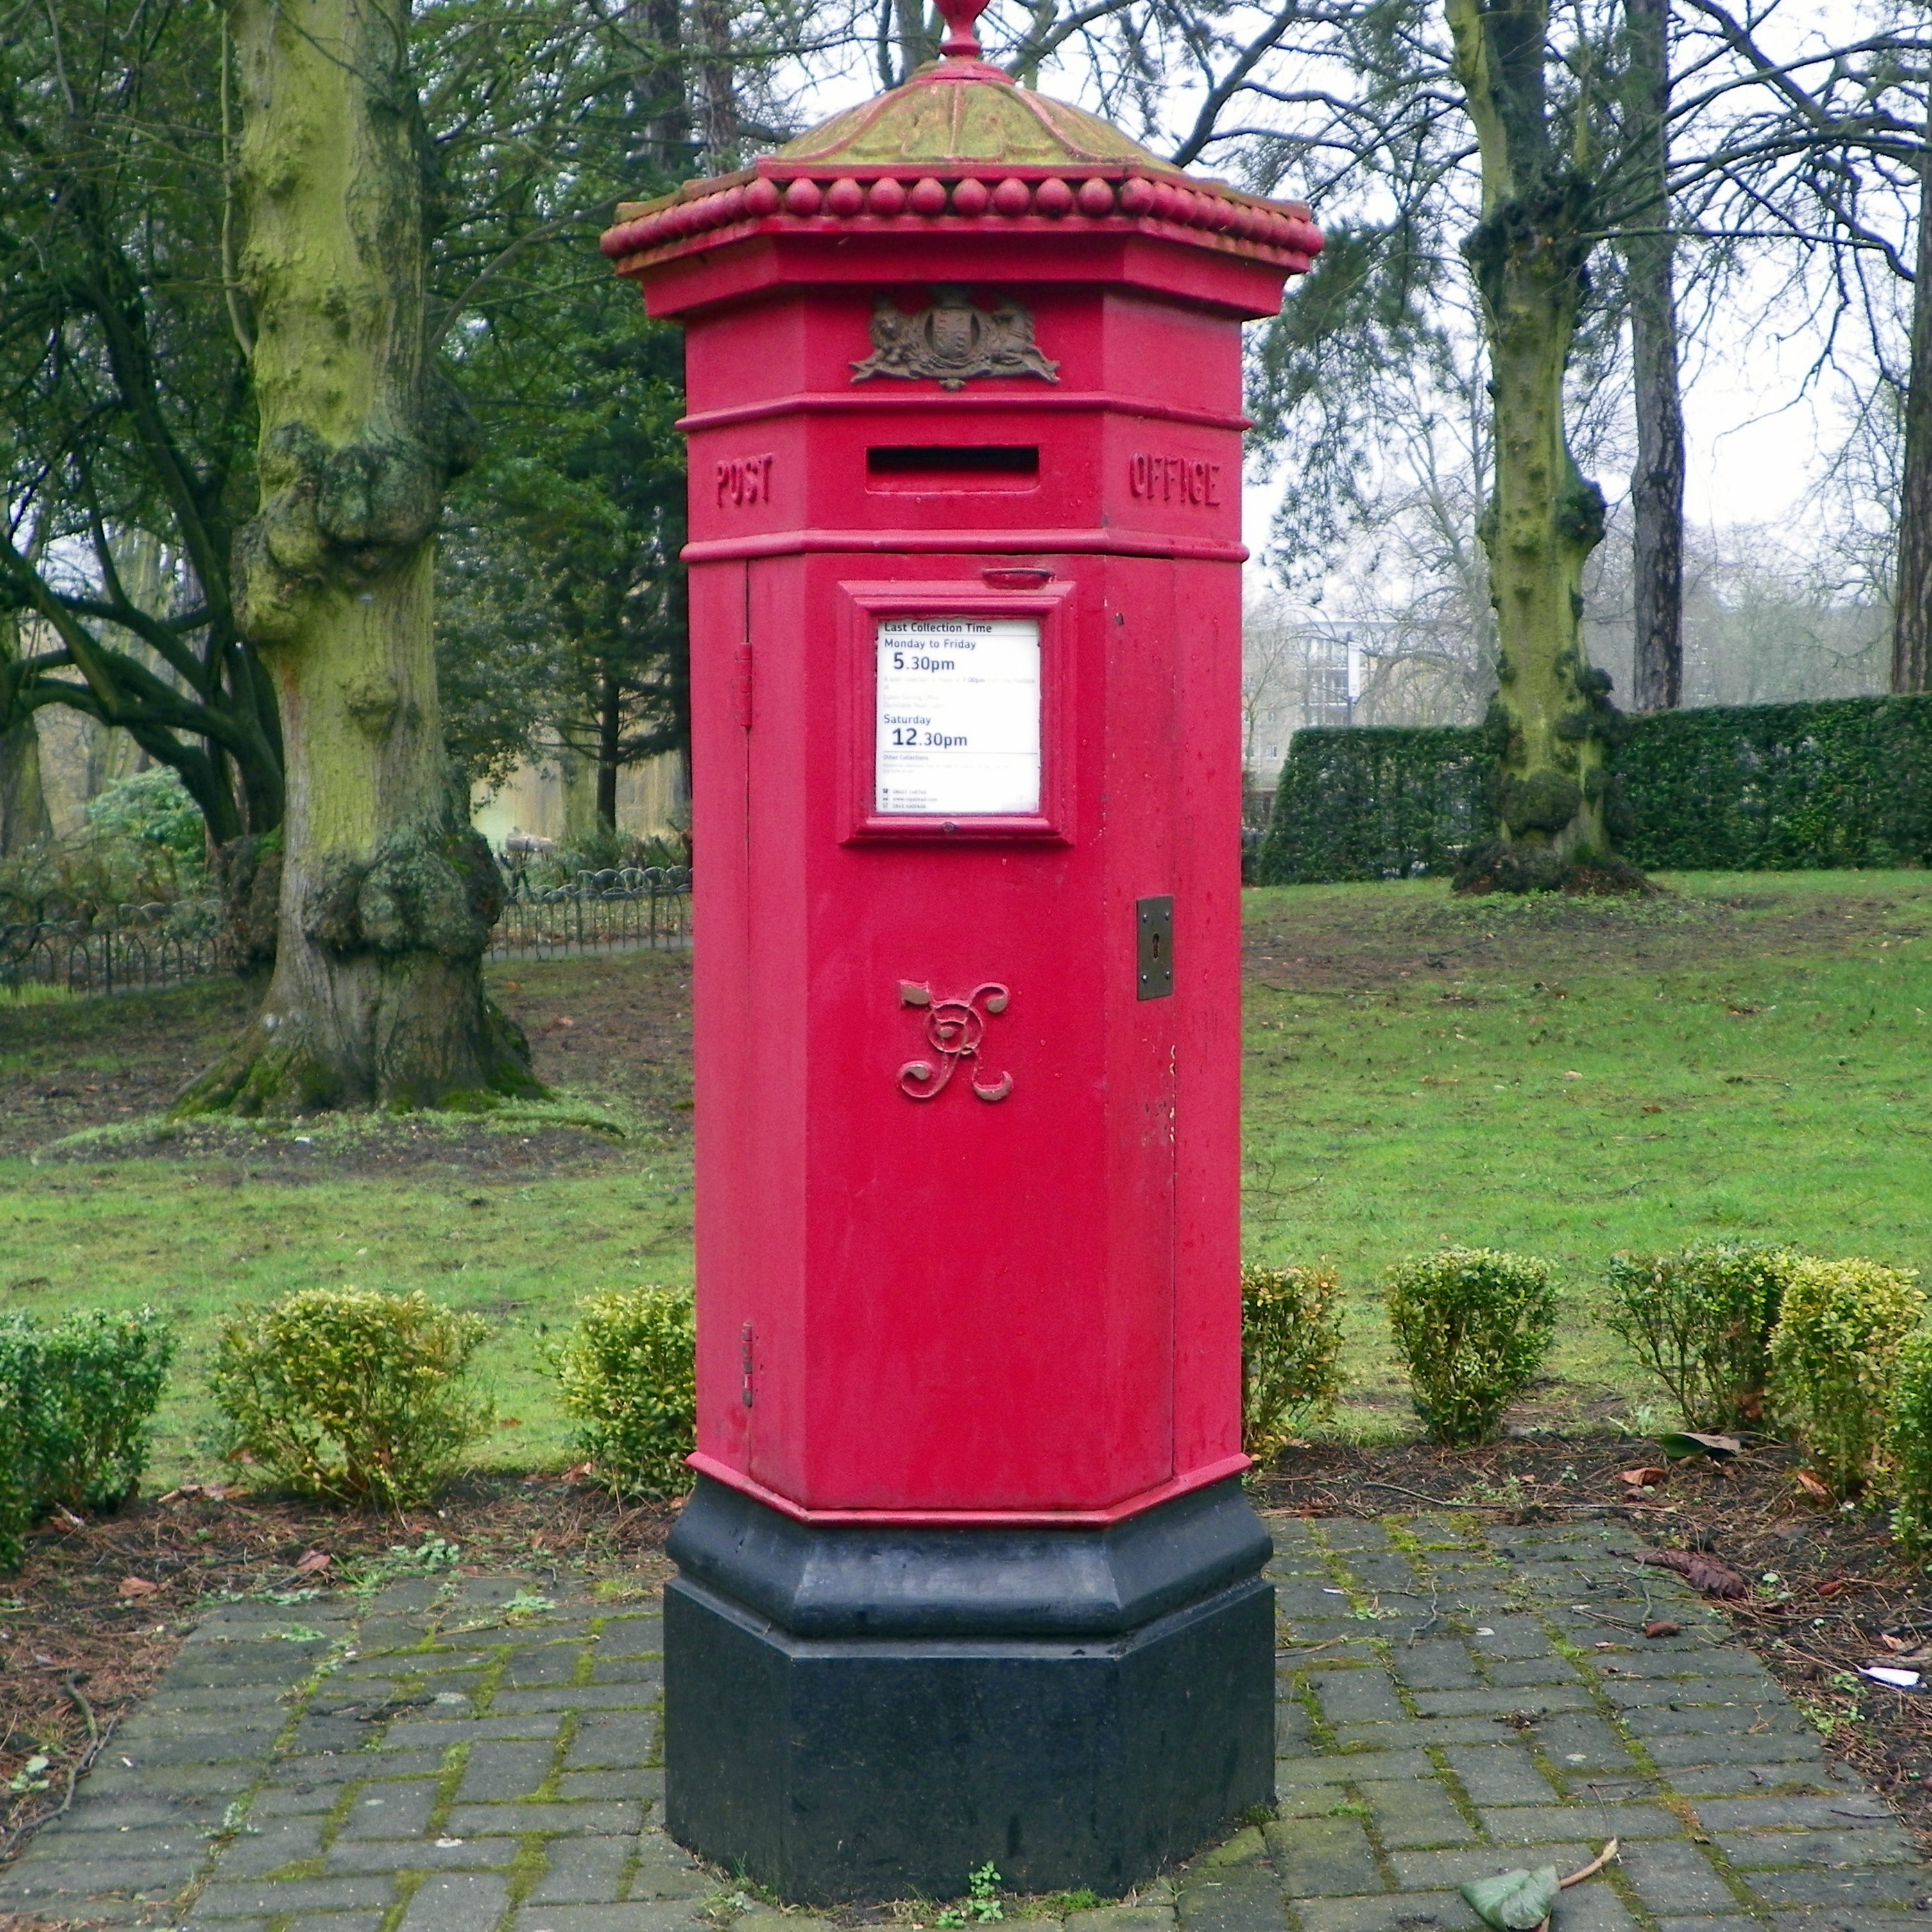 Goc leagrave to harpenden 037 victorian pillar box at wardown park luton adapted image by peter oconnor aka anemoneprojectors cc by sa 2.0 via flickr